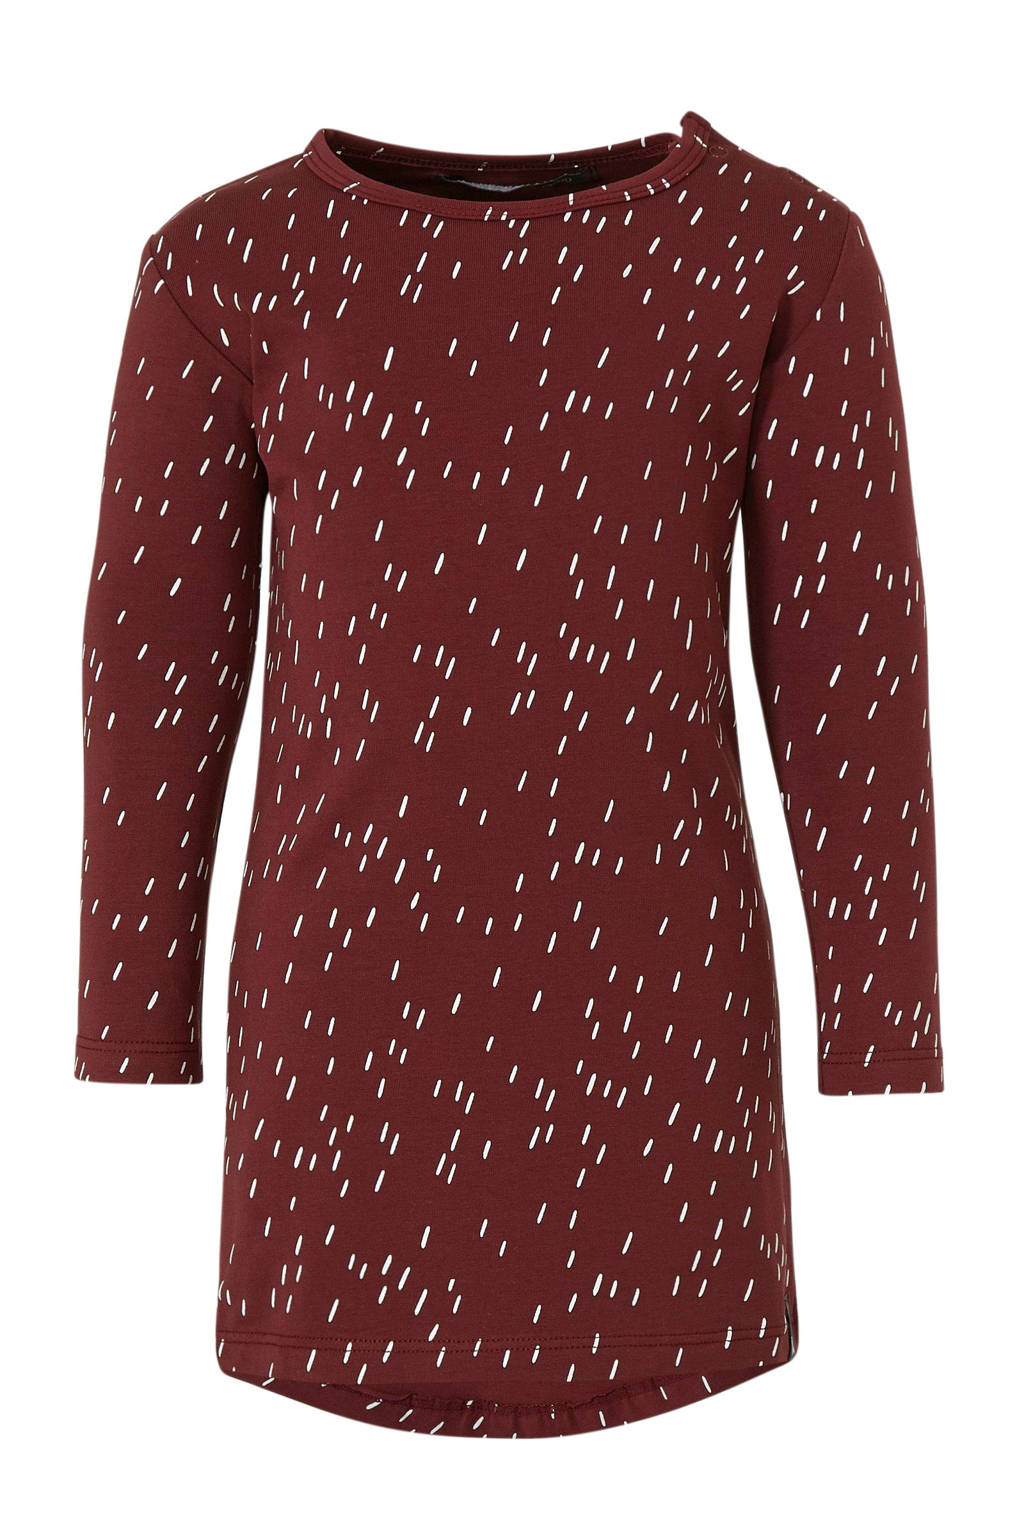 Your Wishes jersey jurk met all over print donkerrood/wit, Donkerrood/wit